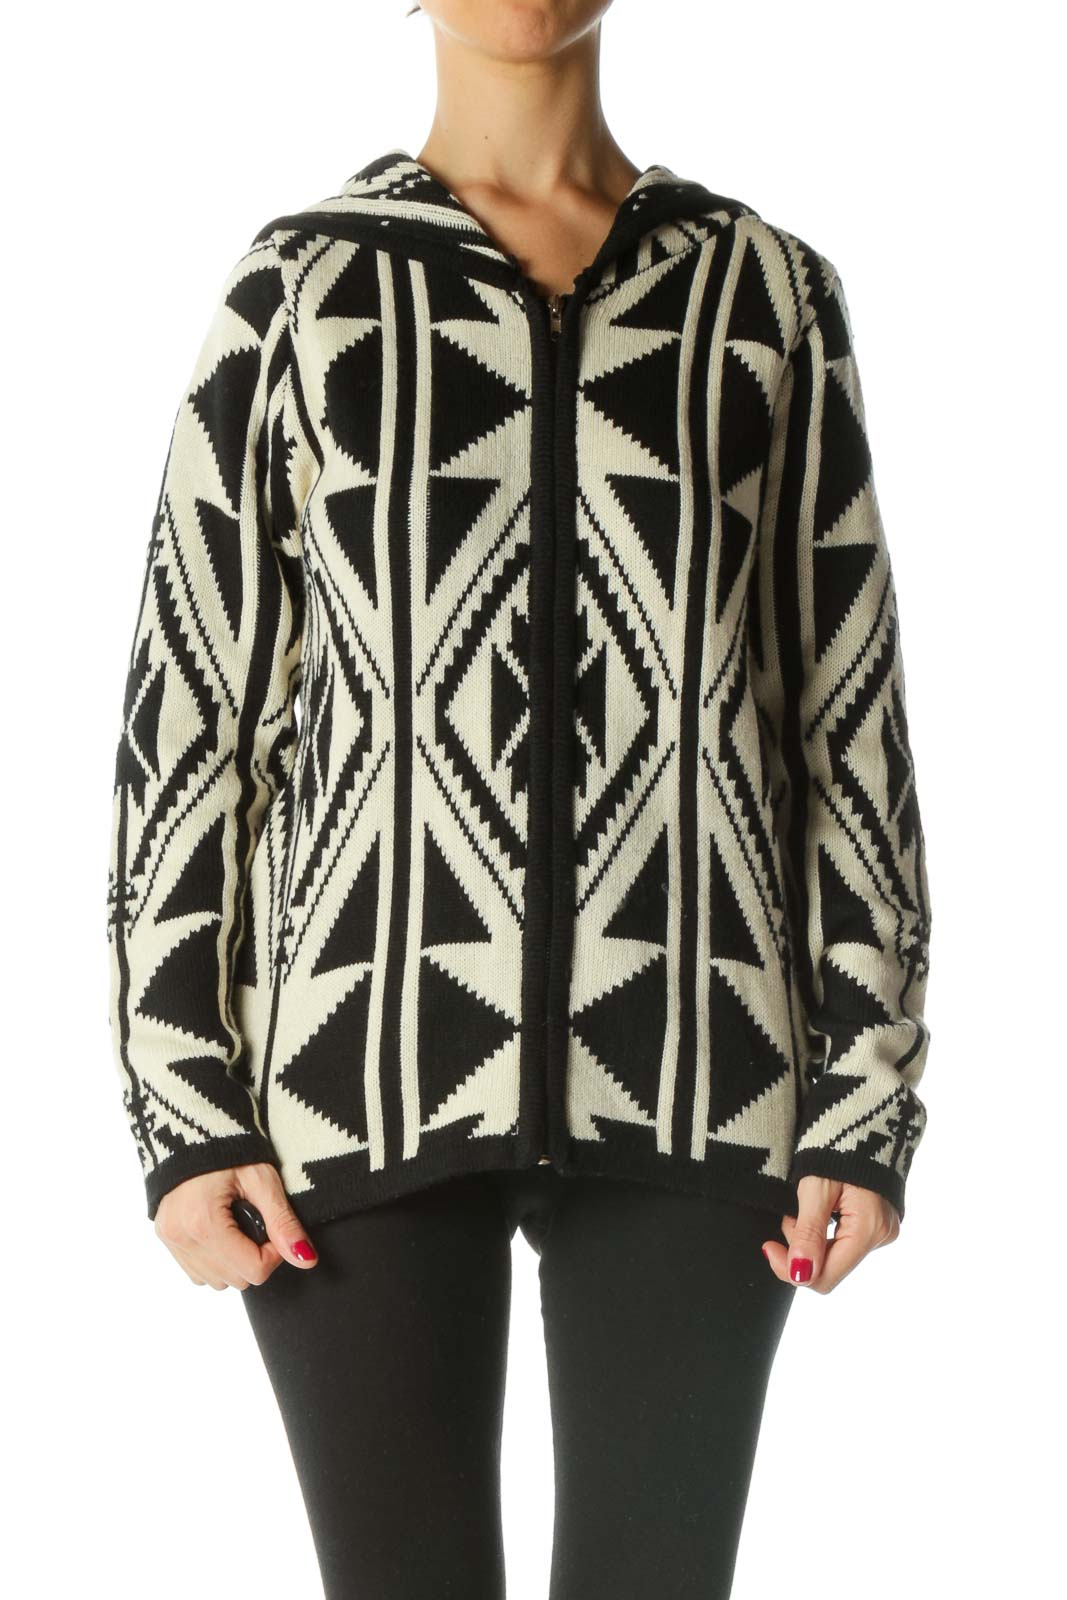 Black Cream Hooded Knitted Pattern Zippered Cardigan Front